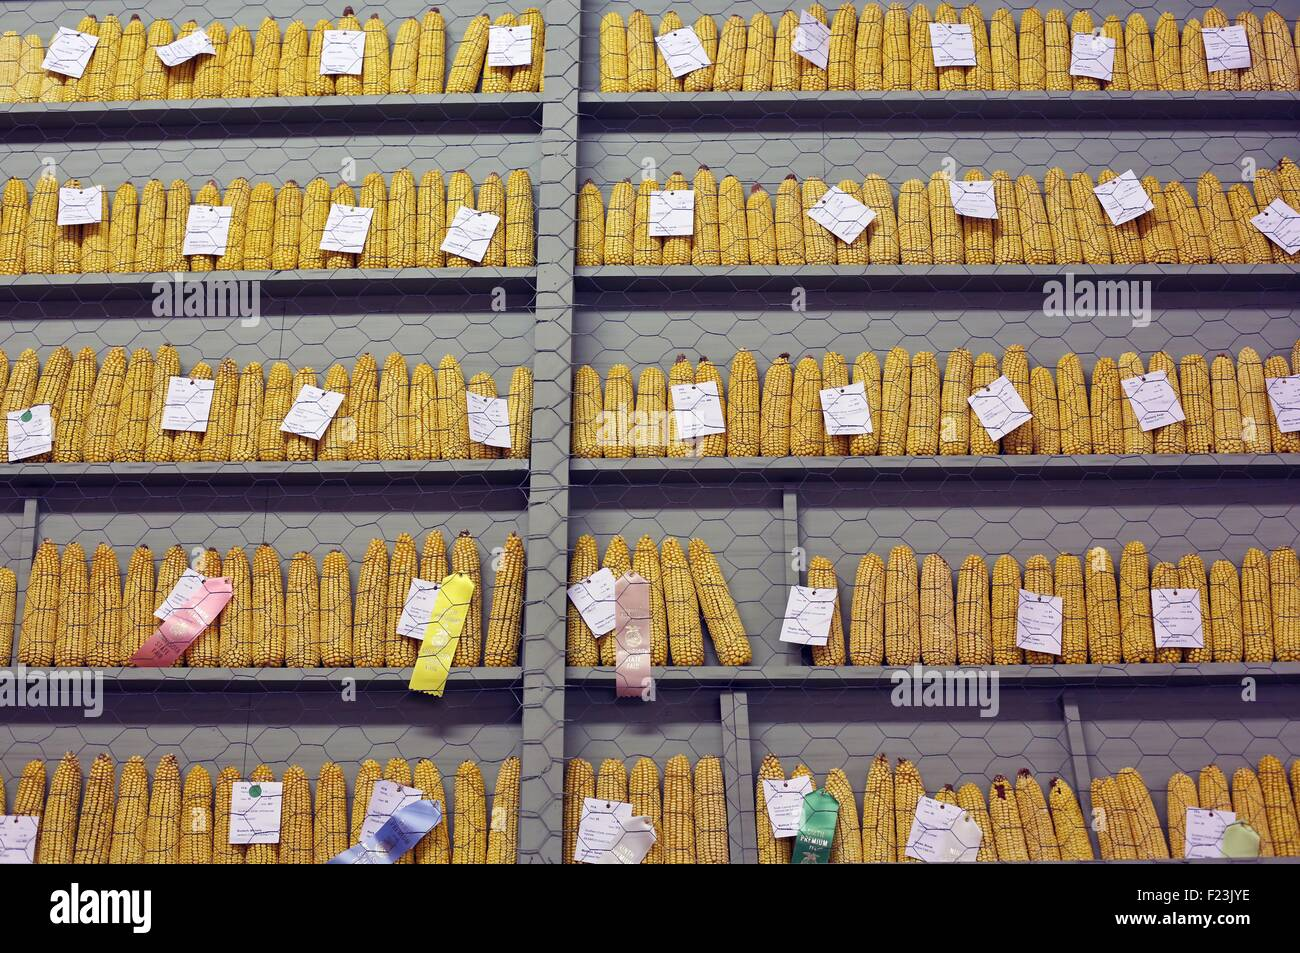 Ears of corn on display after judging at the Minnesota State Fair. - Stock Image